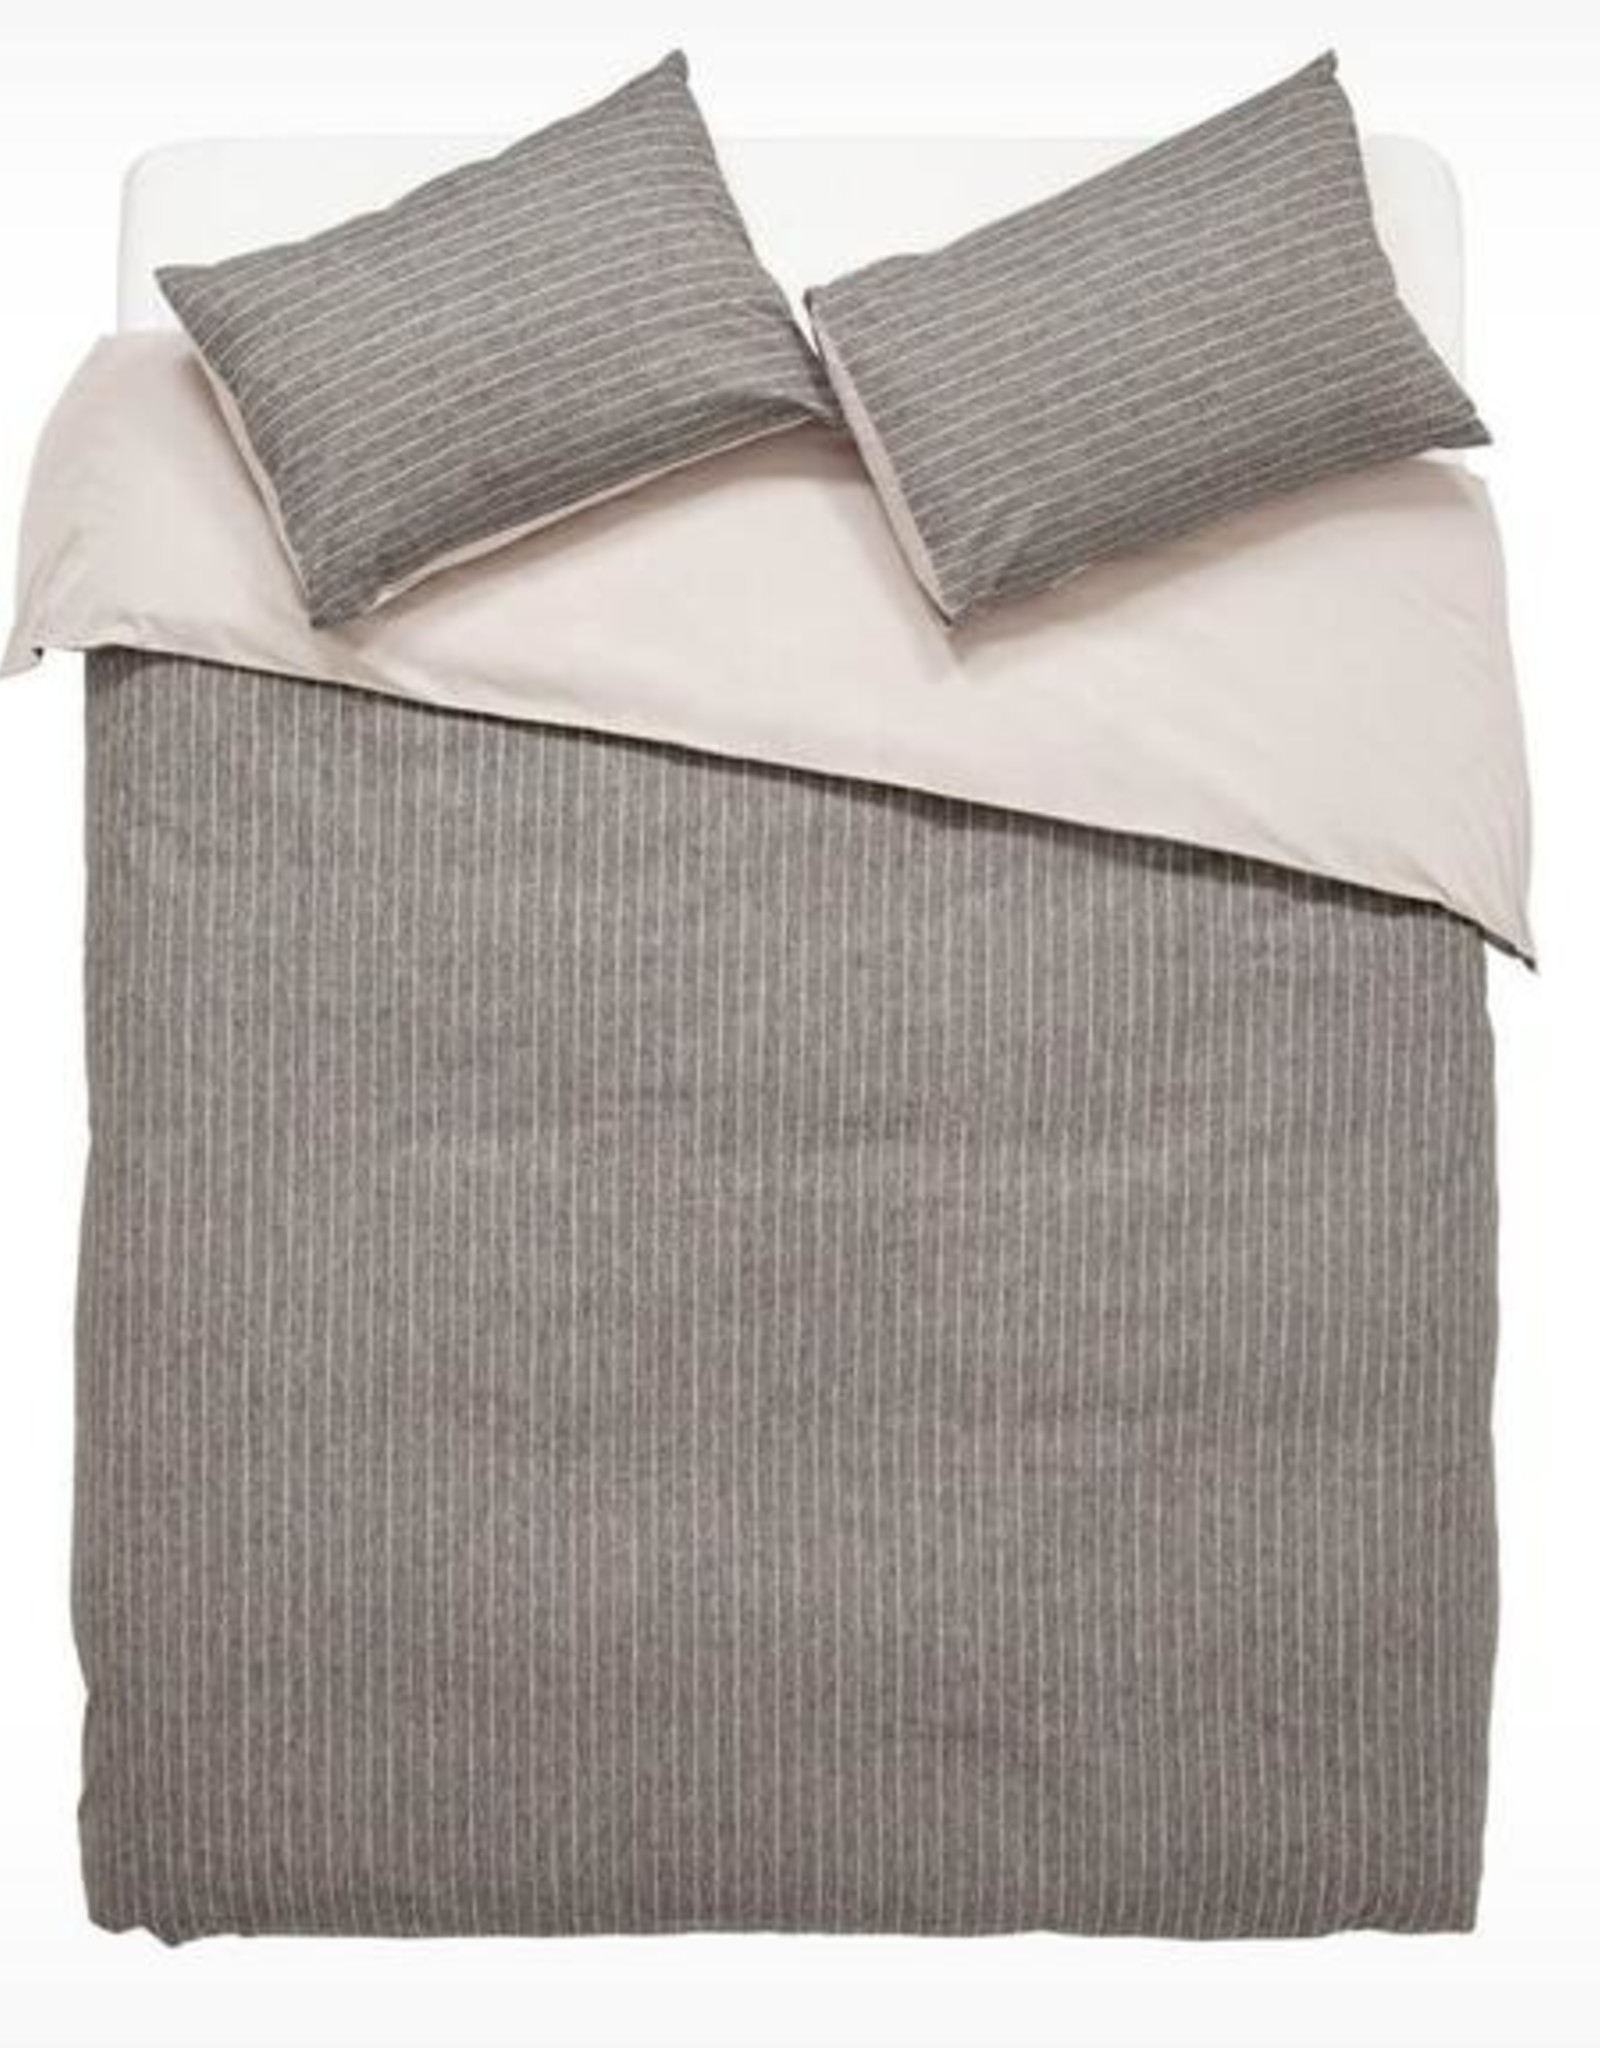 Acadia Duvet Set Grey - King